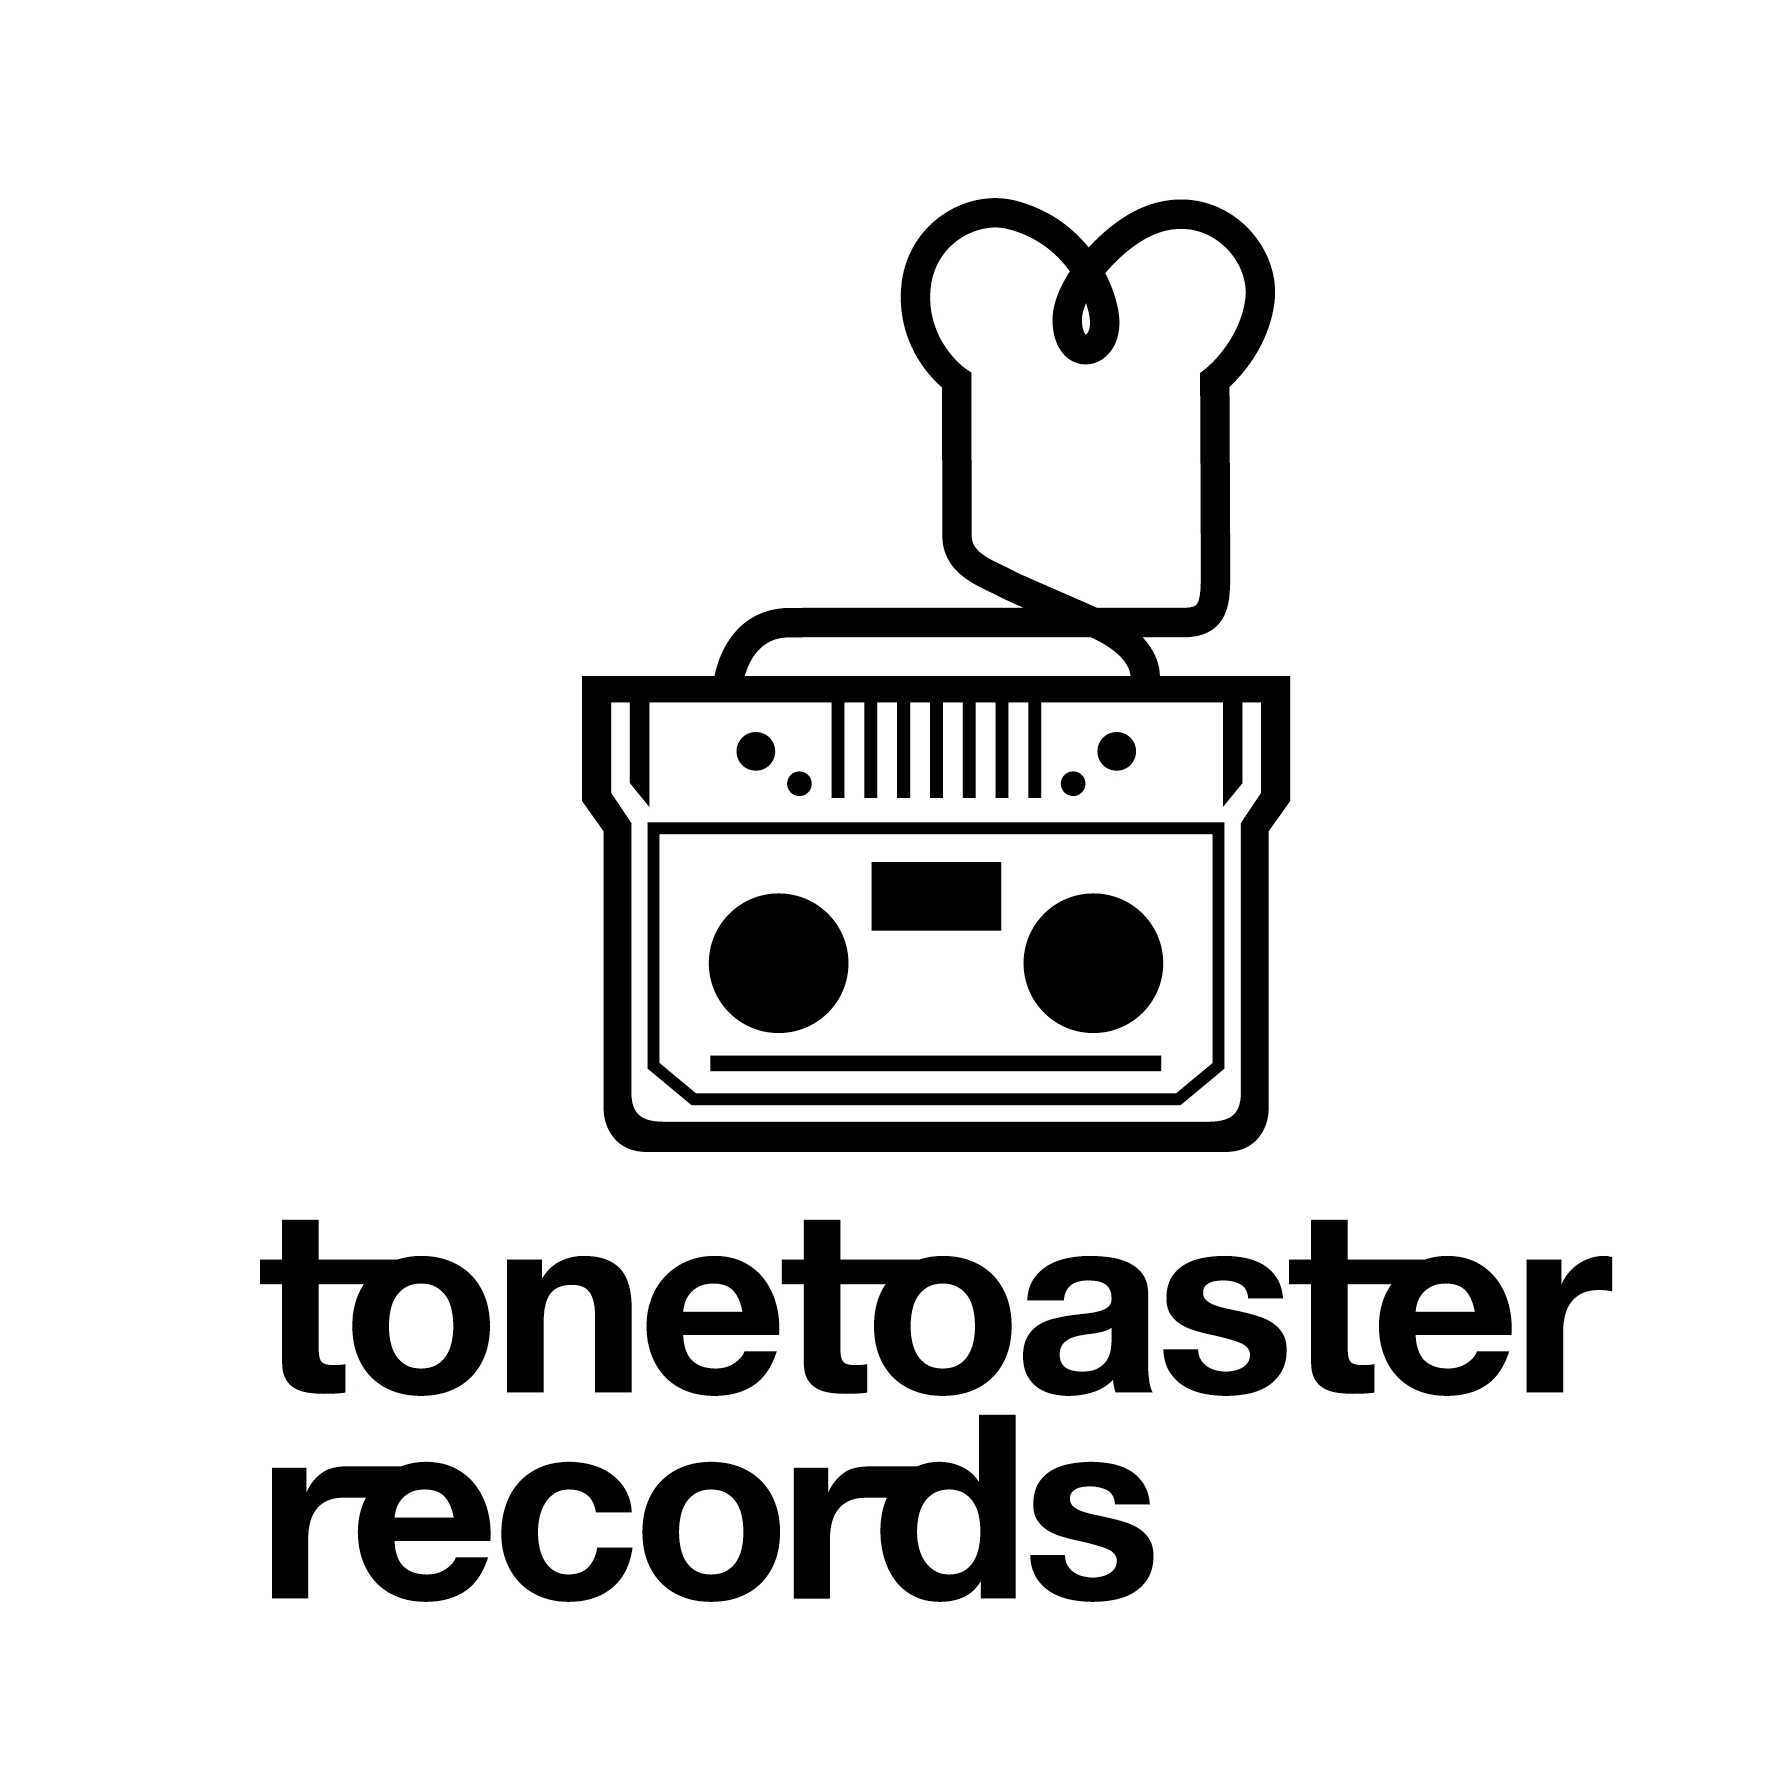 Tonetoaster Records-Logo